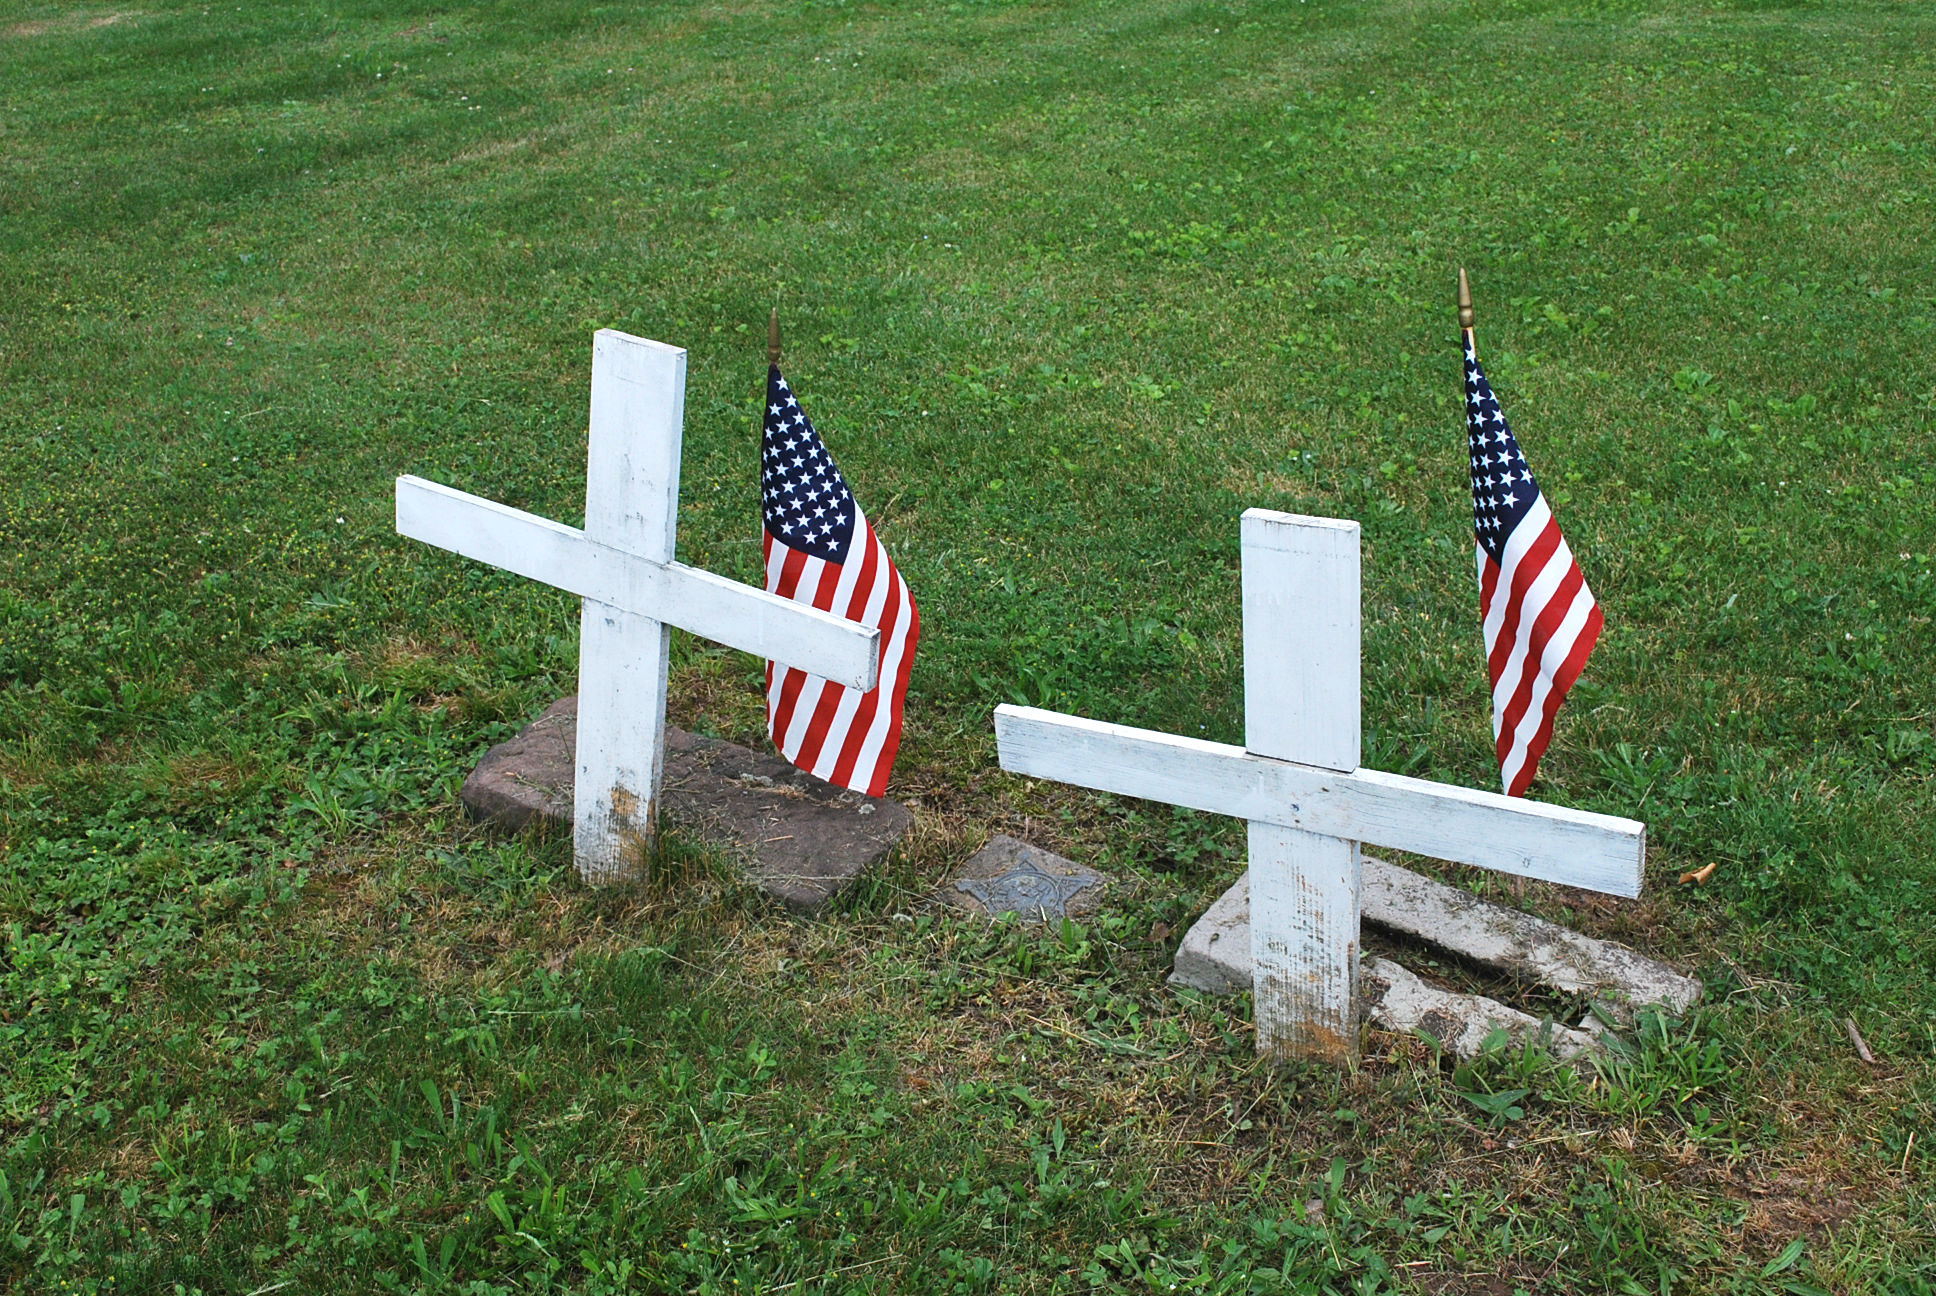 Caption: Unmarked graves on Yellow Hill, Credit: Tonya Fitzpatrick